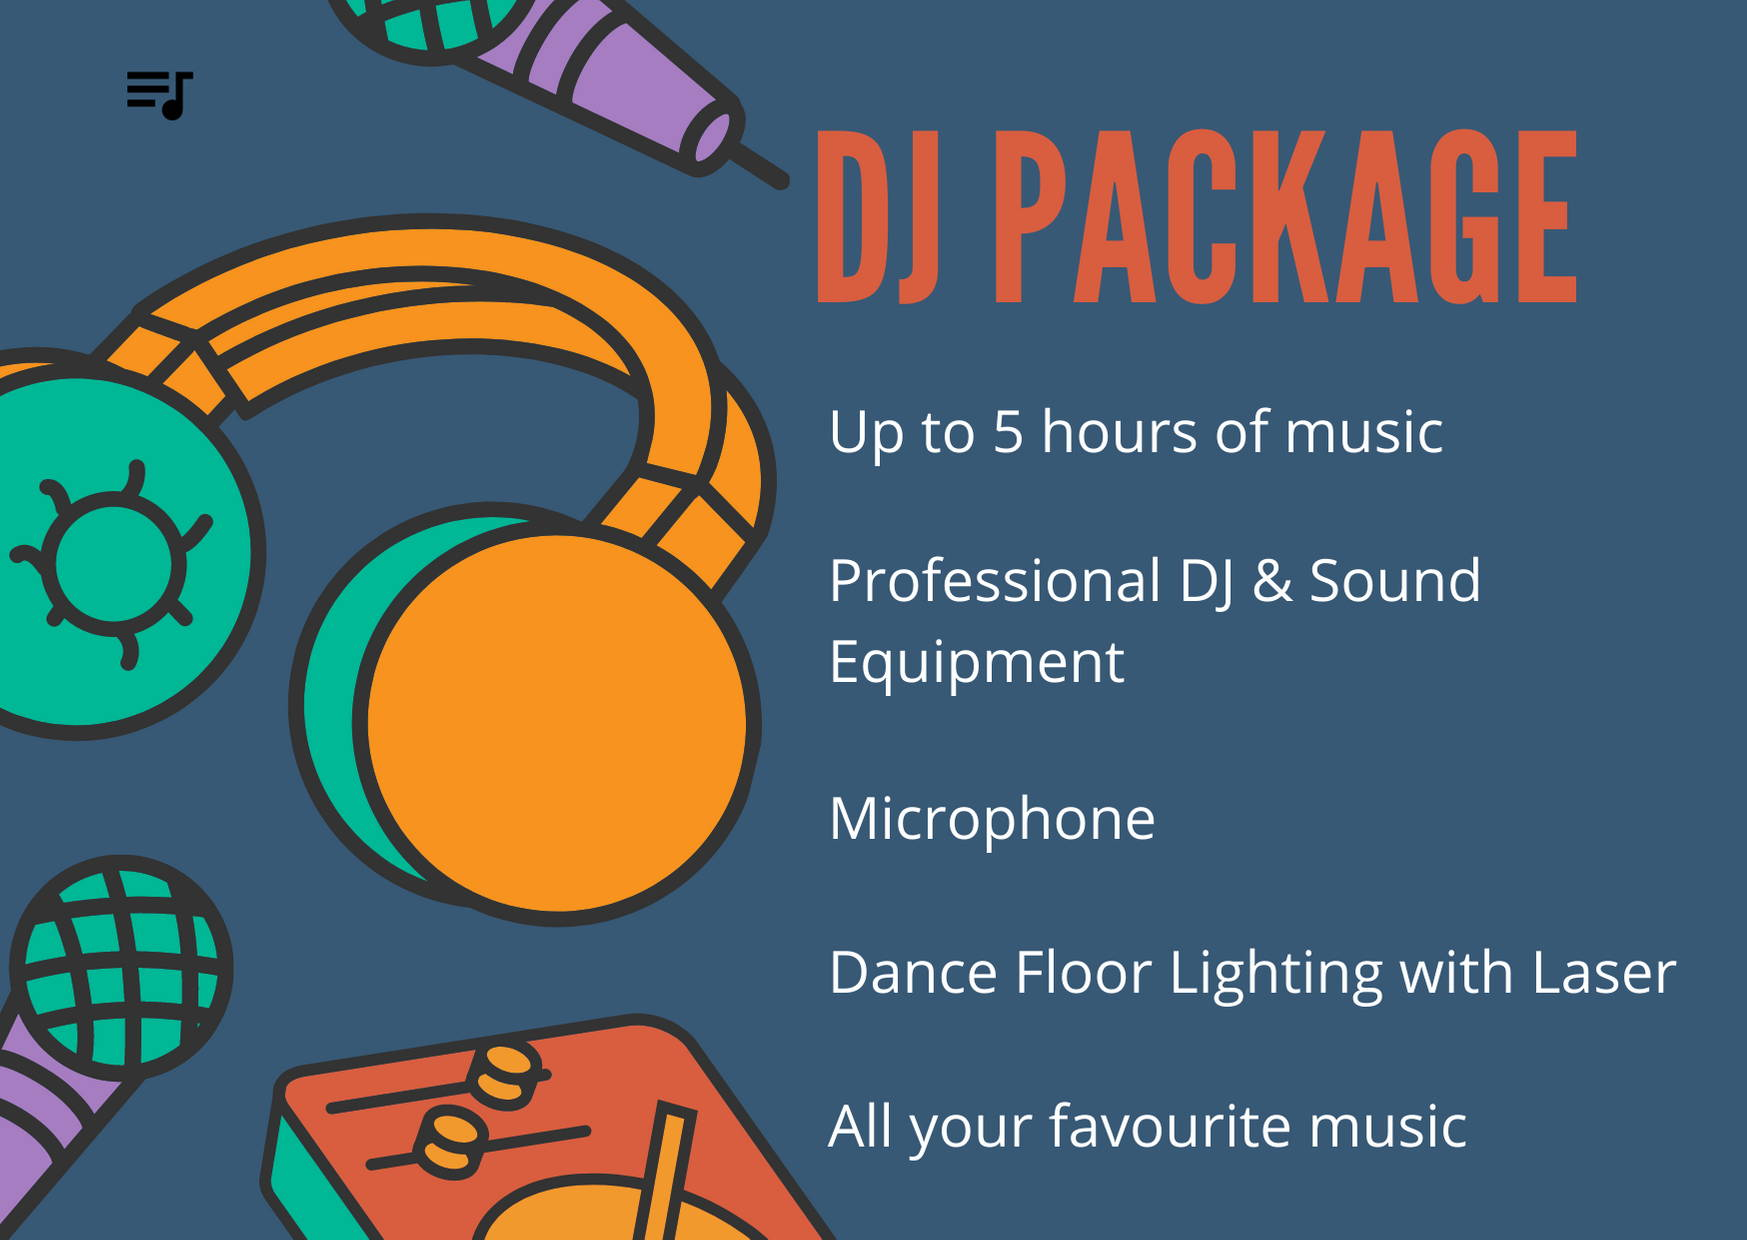 List of DJ Package inclusions available at Photobooths Newcastle